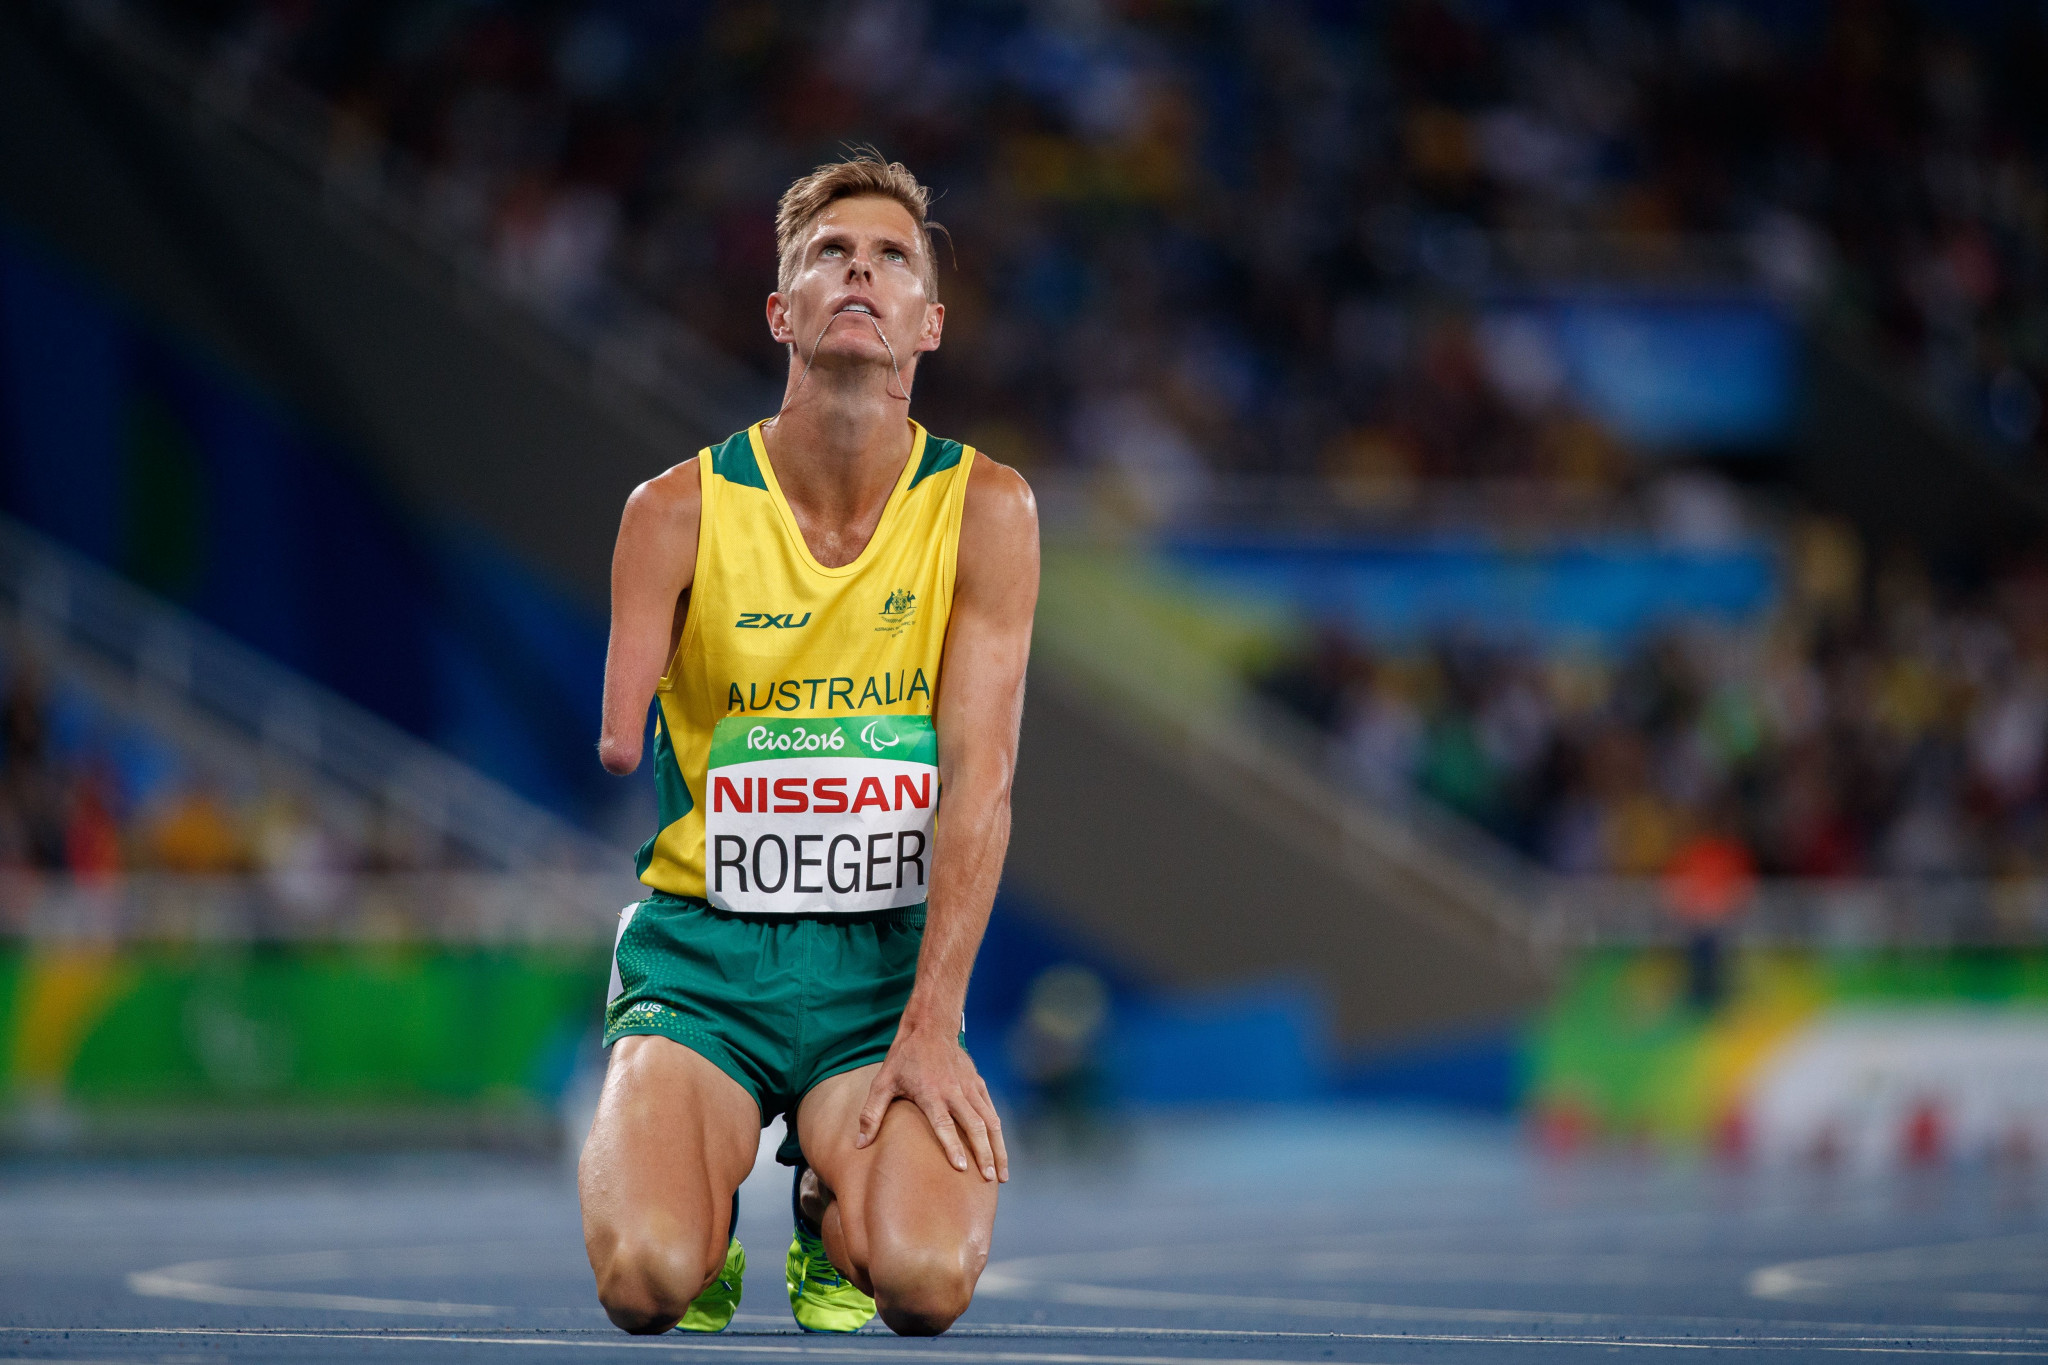 Middle-distance runner Roeger aiming for gold at World Para Marathon Championships